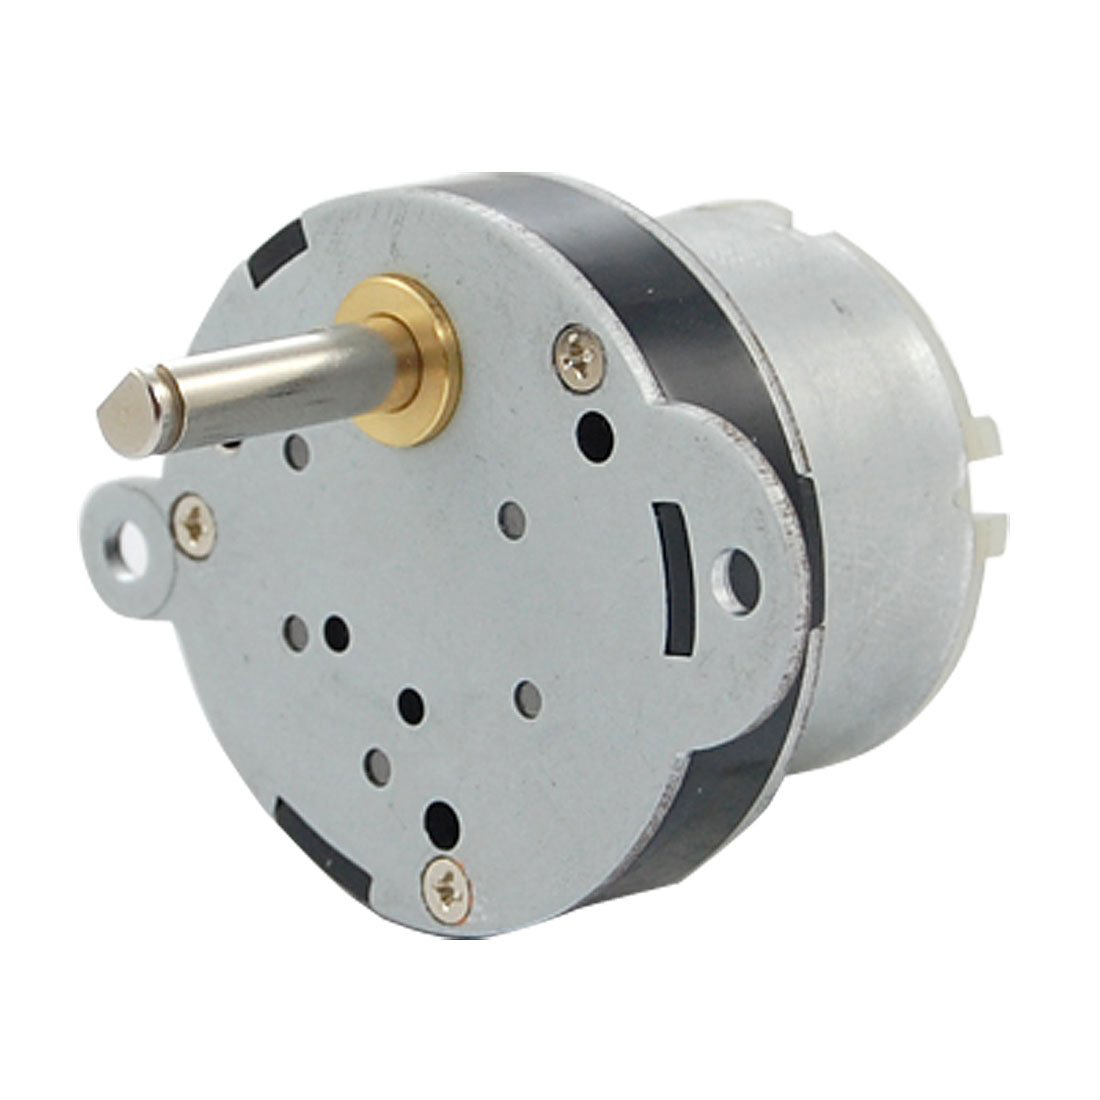 IMC Hot 40mm DC 12V 2RPM High Torque Electric Gearbox Motor New